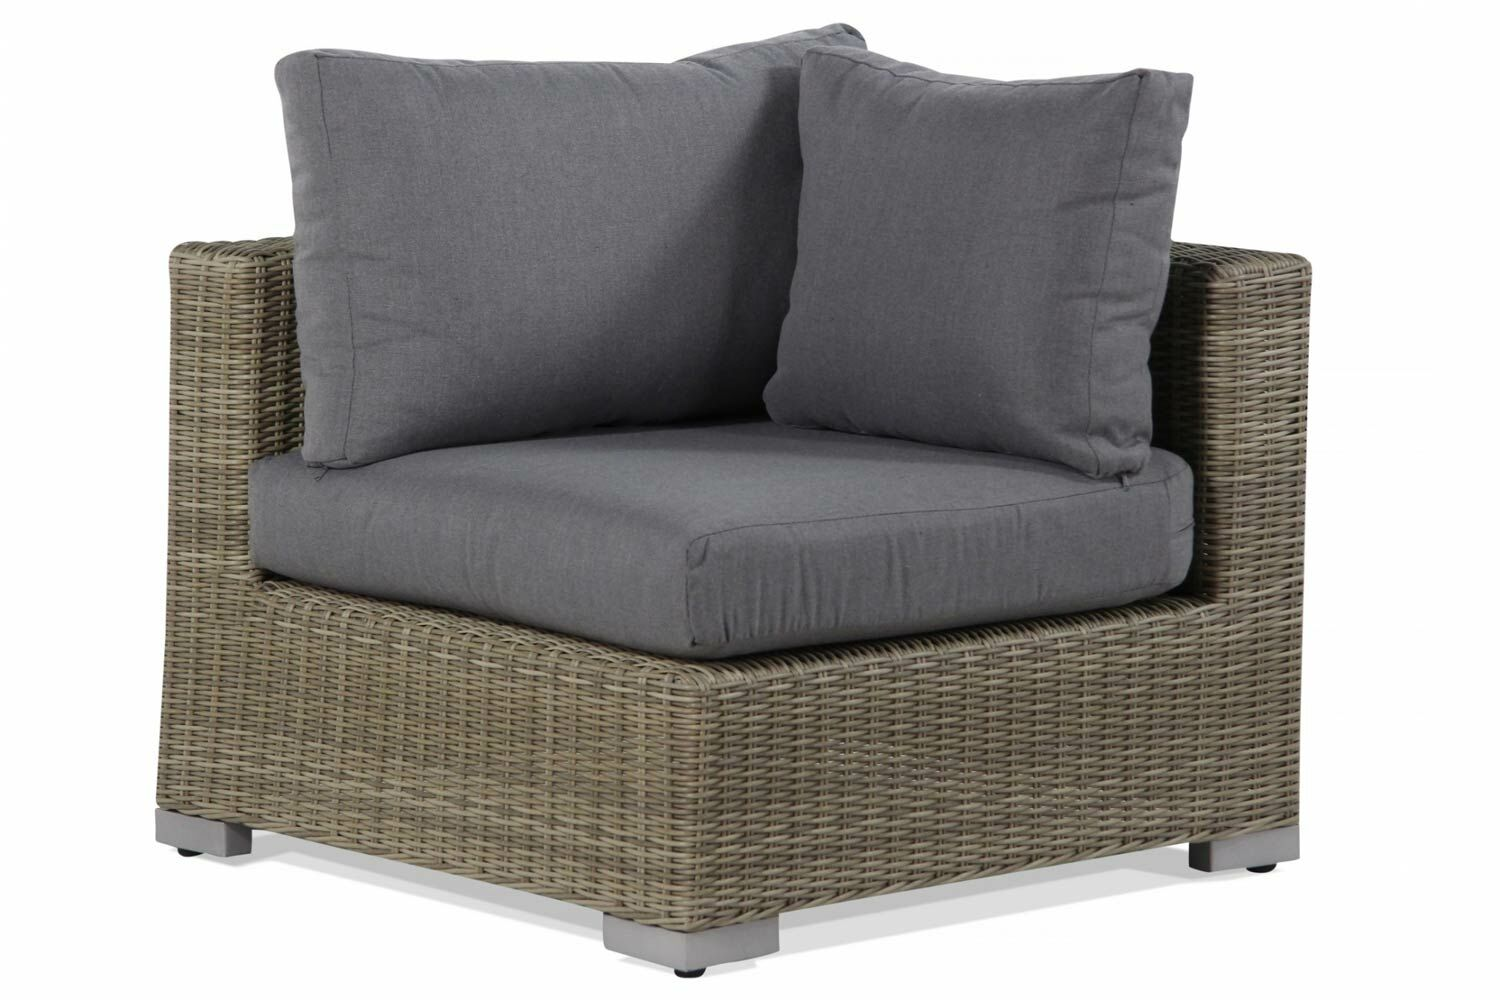 Garden Collections Toronto Chaise Loungeset 4 Delig